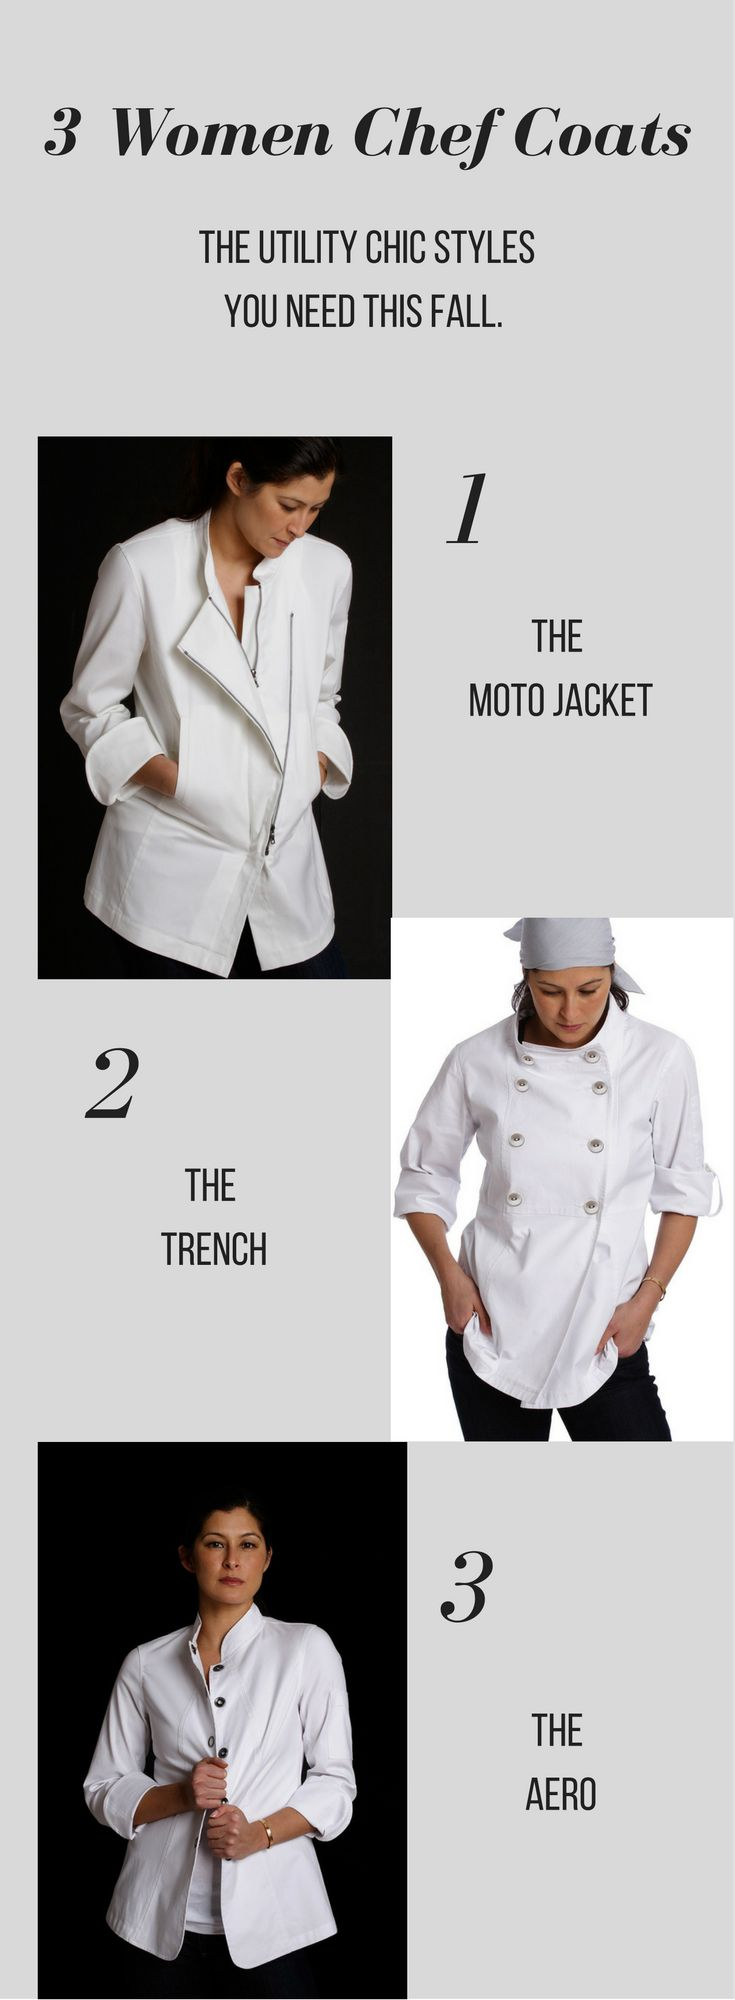 Where can i buy a chef jacket